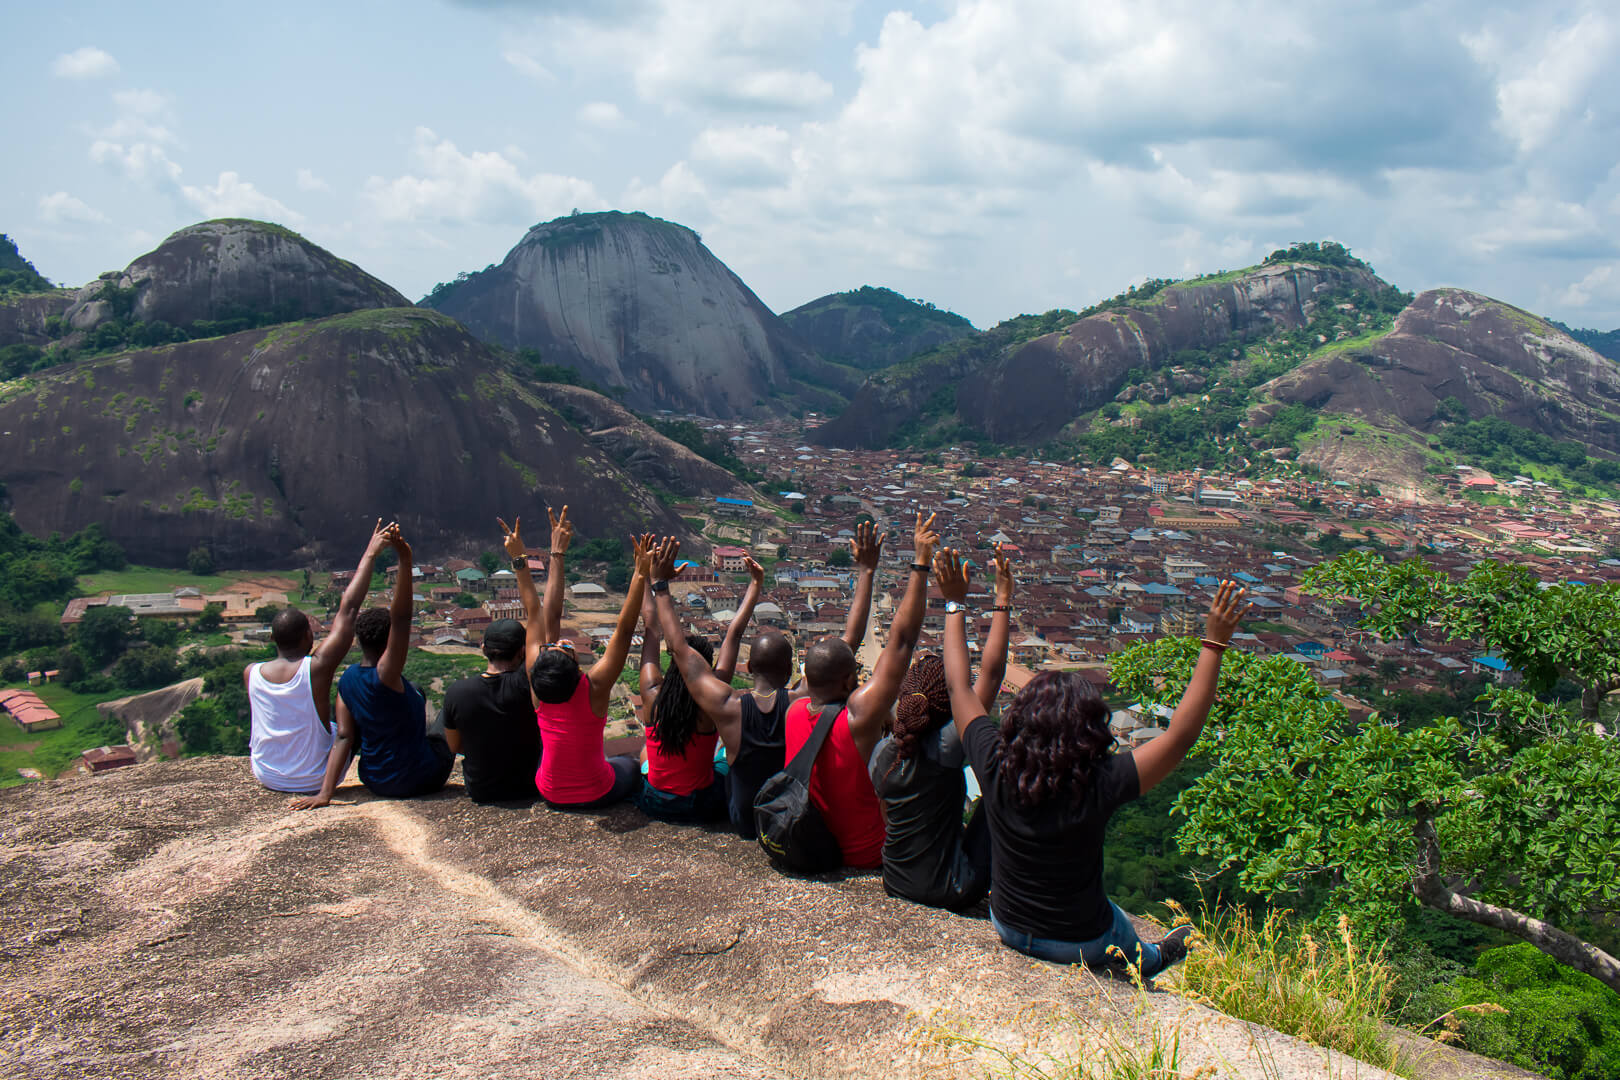 Idanre Hills: This is a Wonder! All You Need to Know About Exploring Idanre (A Guide)